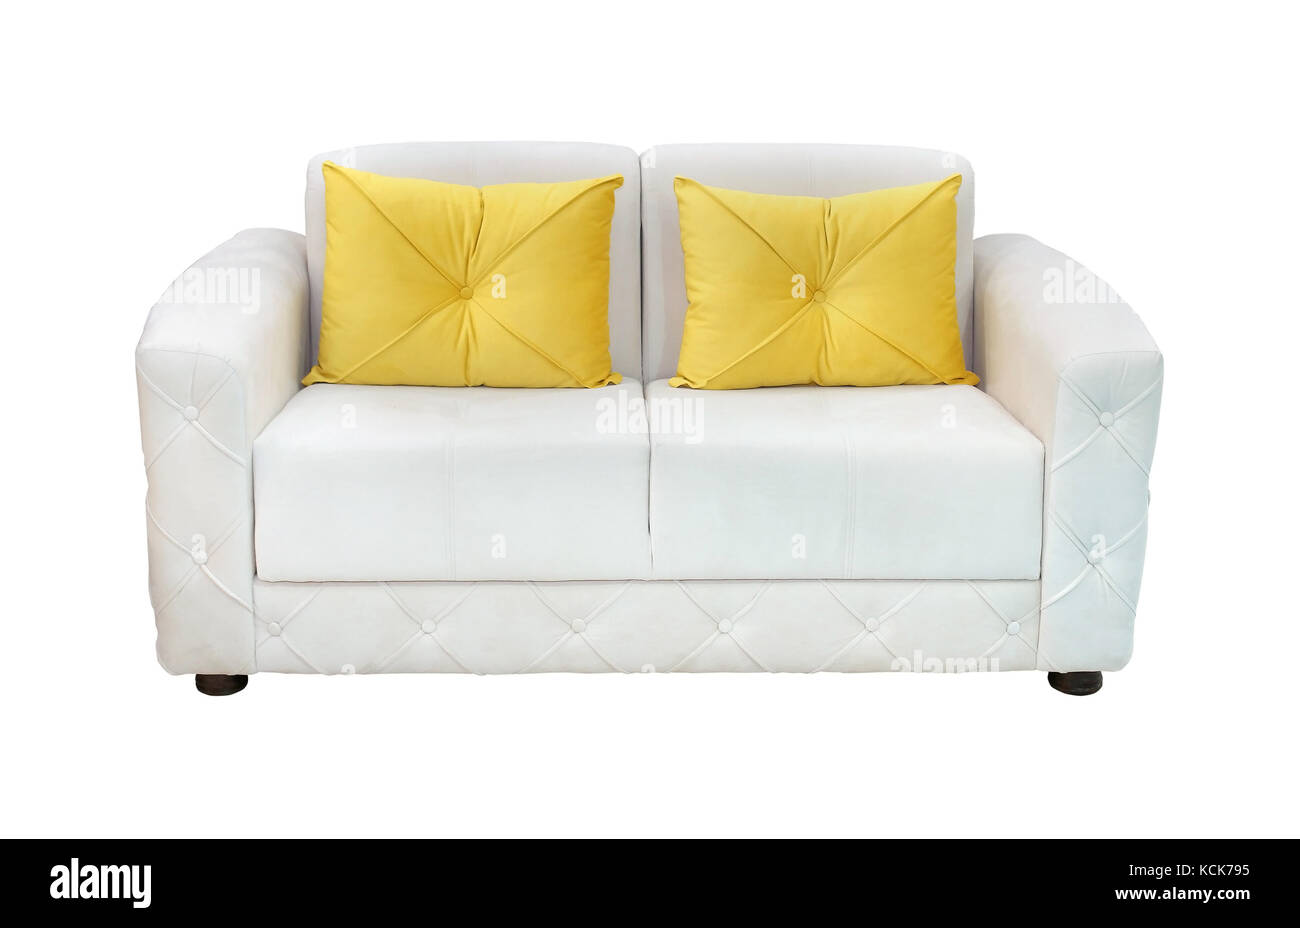 Admirable White Leather Sofa With Yellow Decorative Pillows Isolated Andrewgaddart Wooden Chair Designs For Living Room Andrewgaddartcom